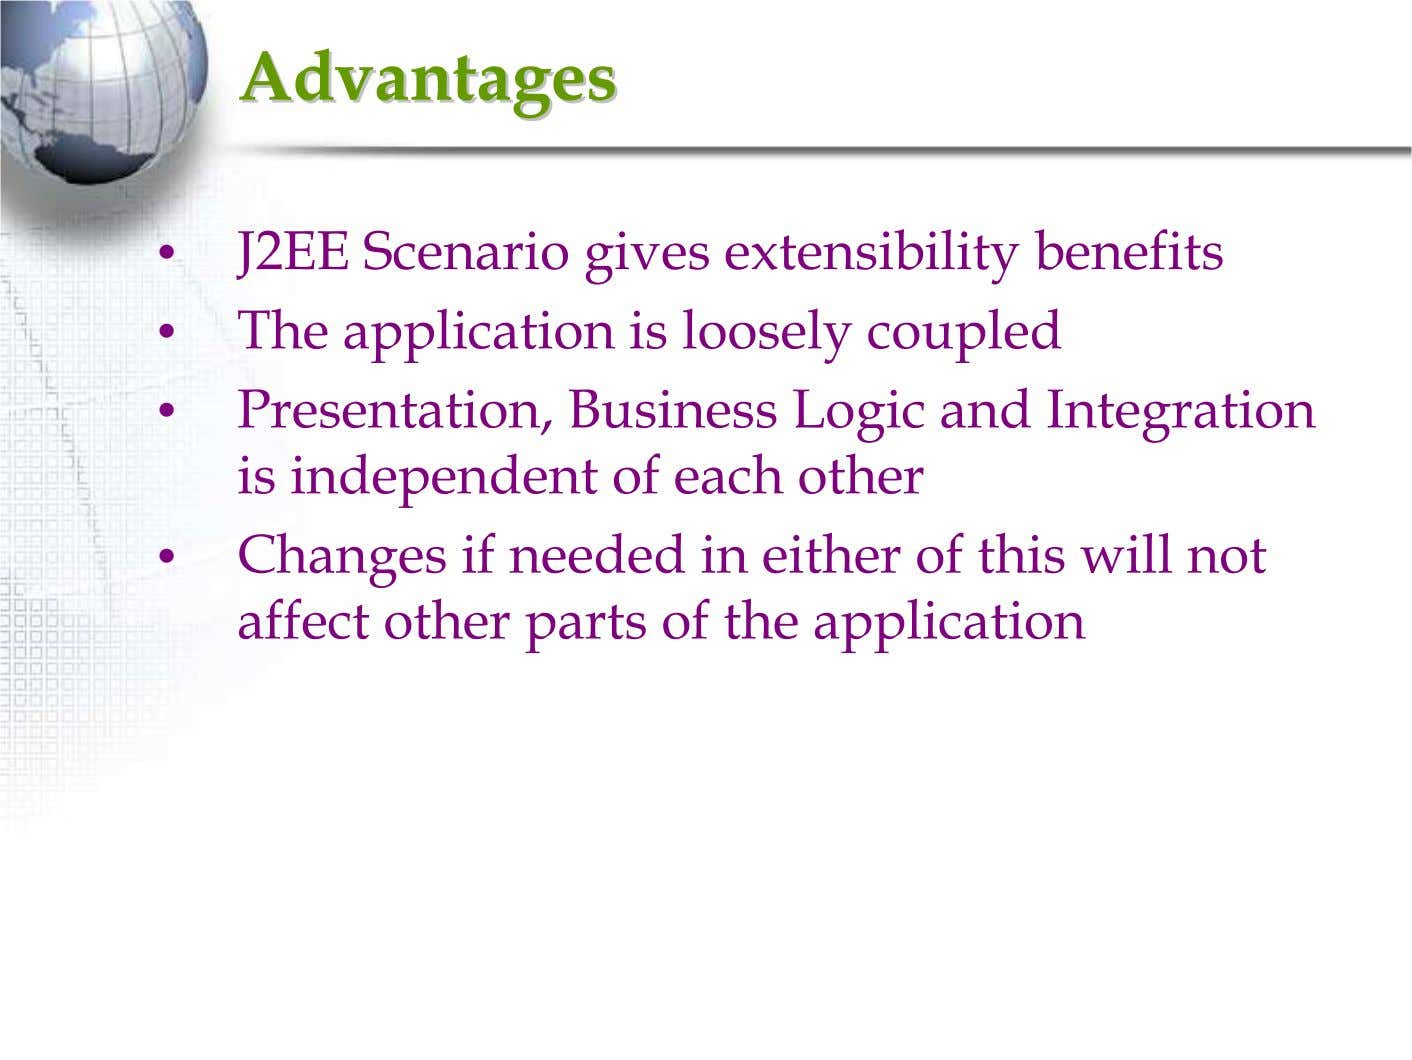 AdvantagesAdvantages • J2EE Scenario gives extensibility benefits • The application is loosely coupled •